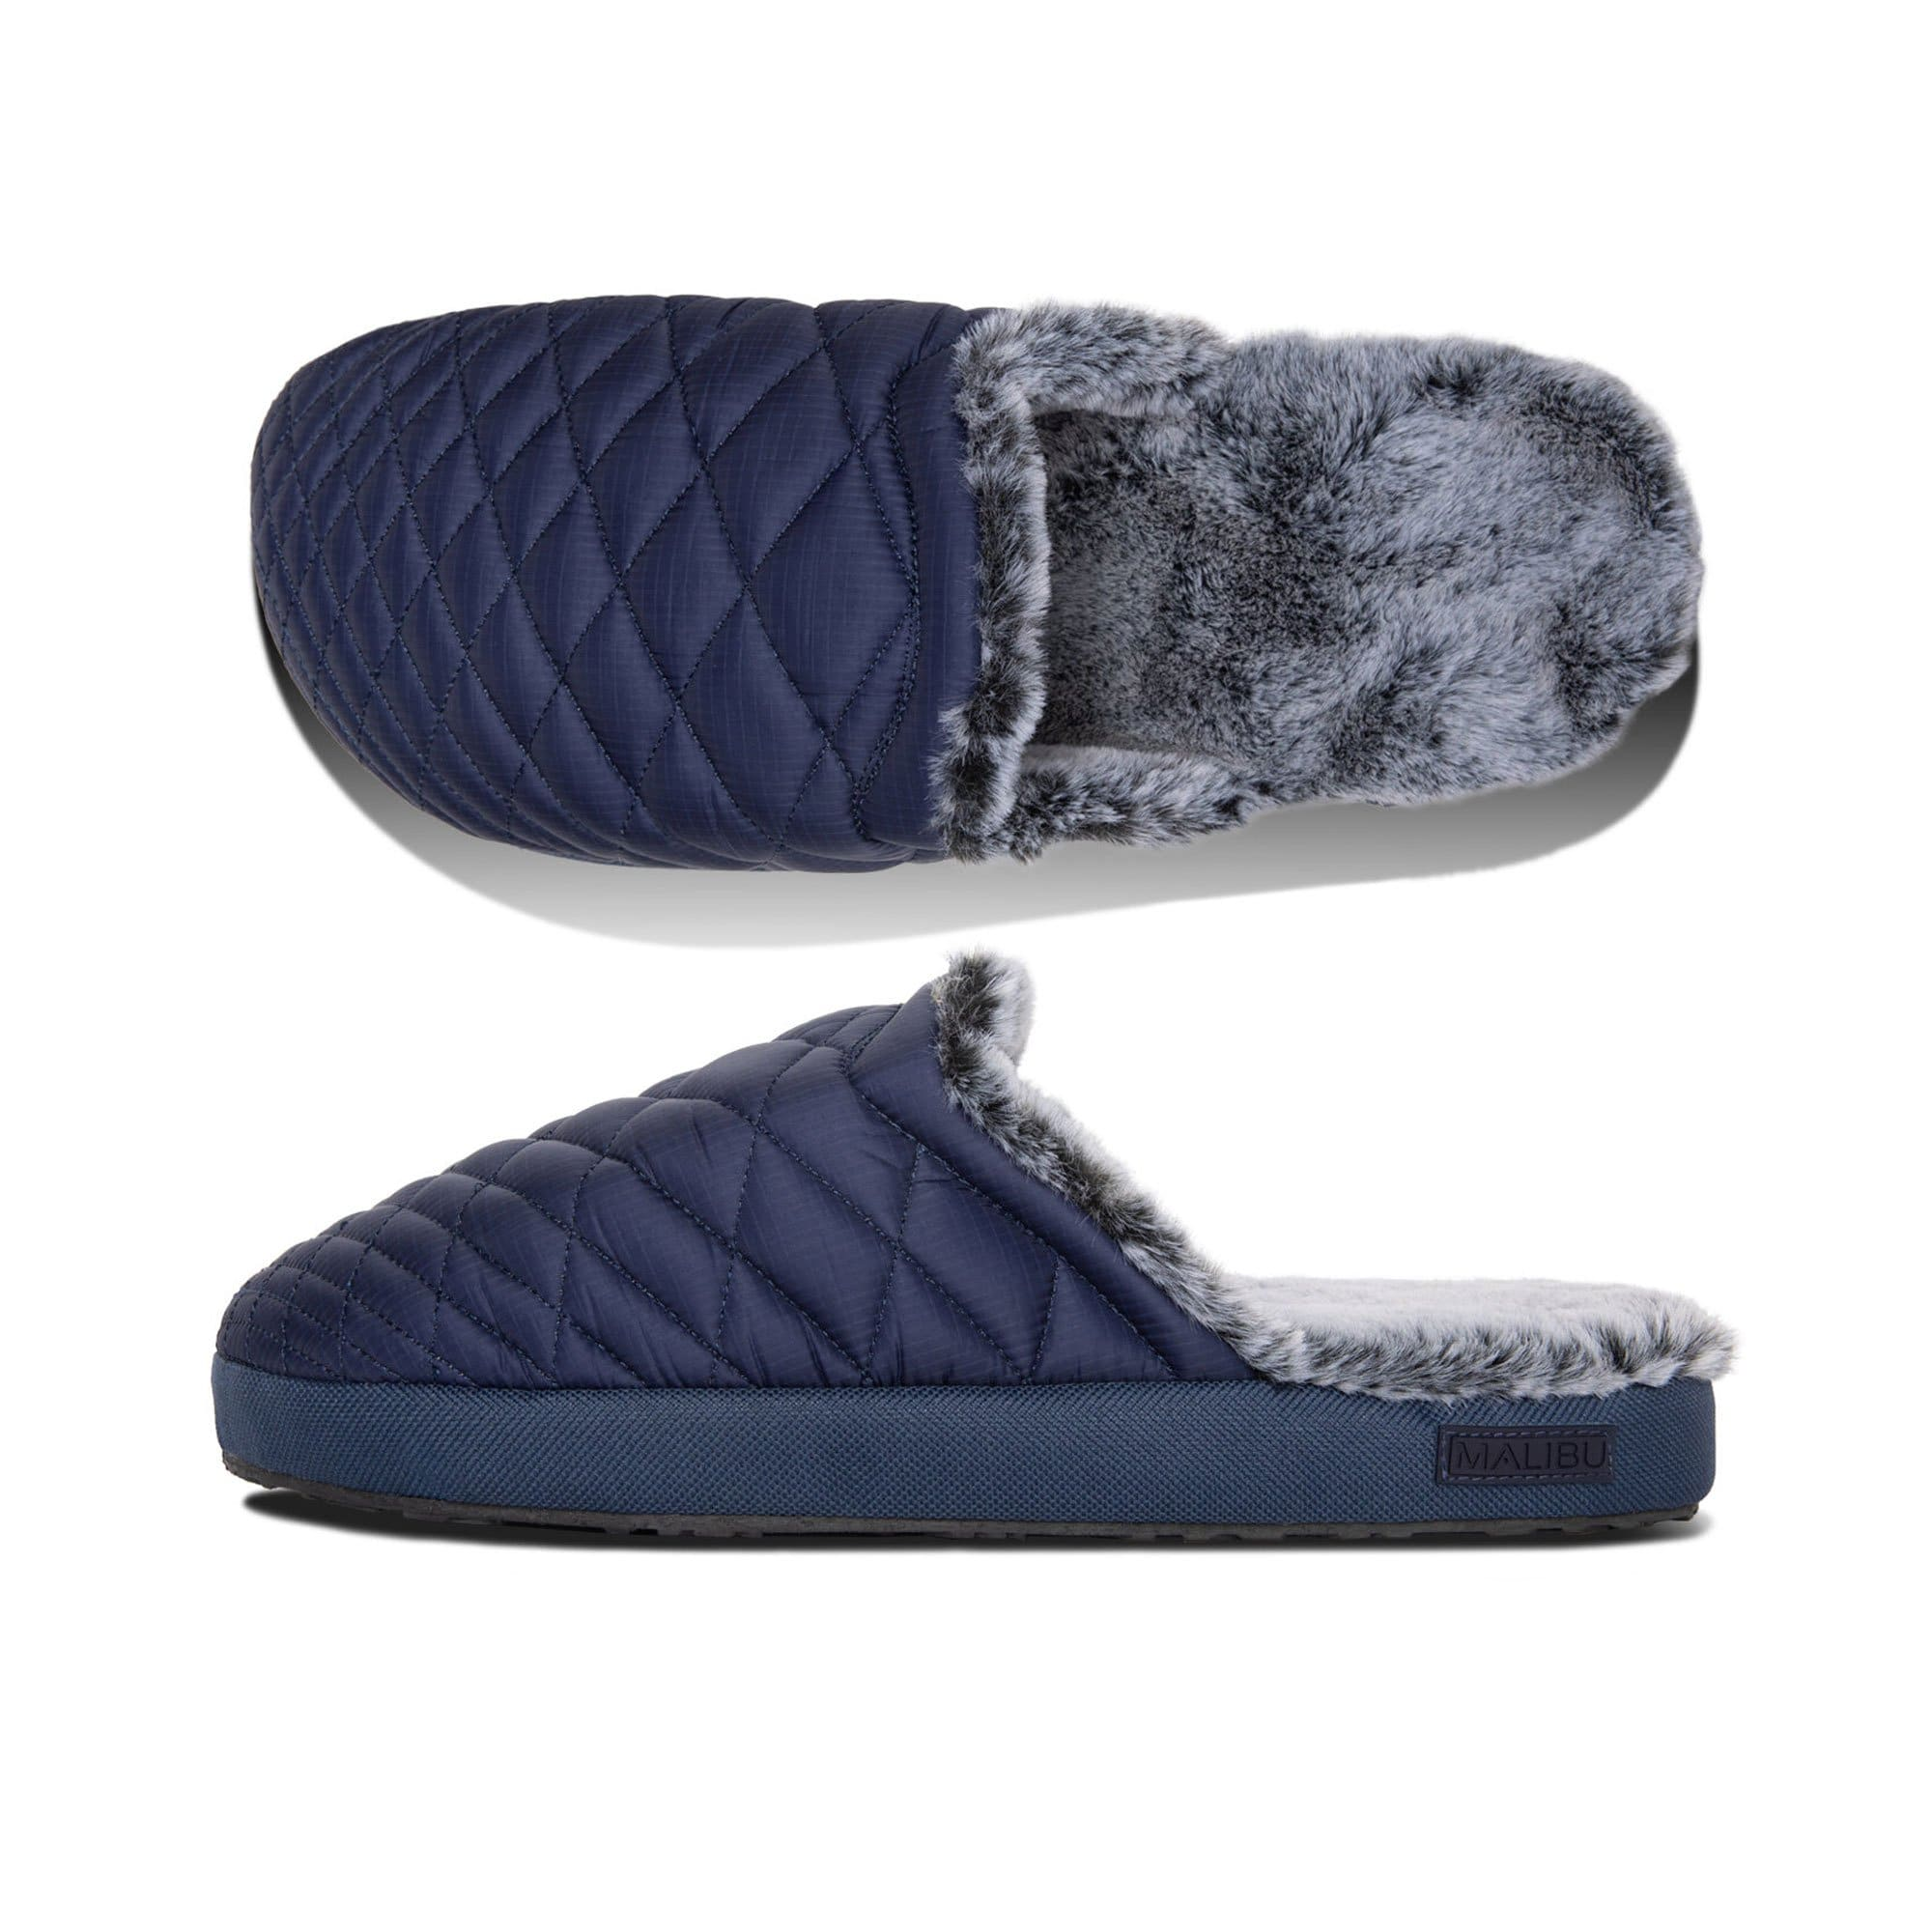 Malibu Sandals Schuhe EU 41/42 / Navy Colony Mule Slipper